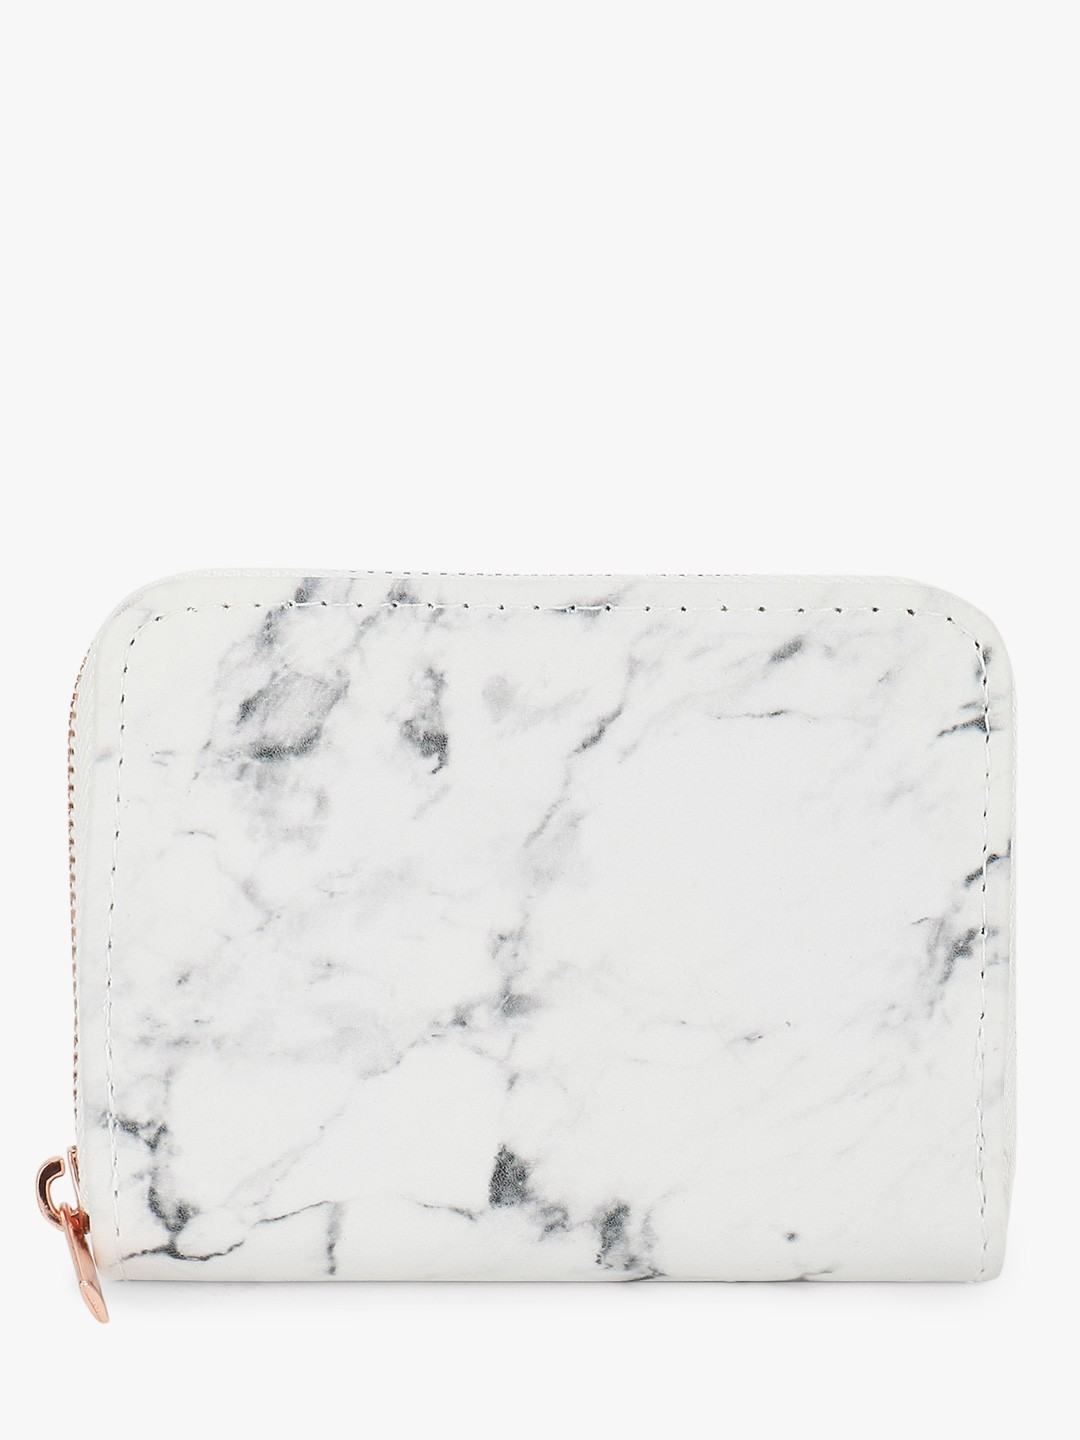 New Look White Marble Print Cardholder 1